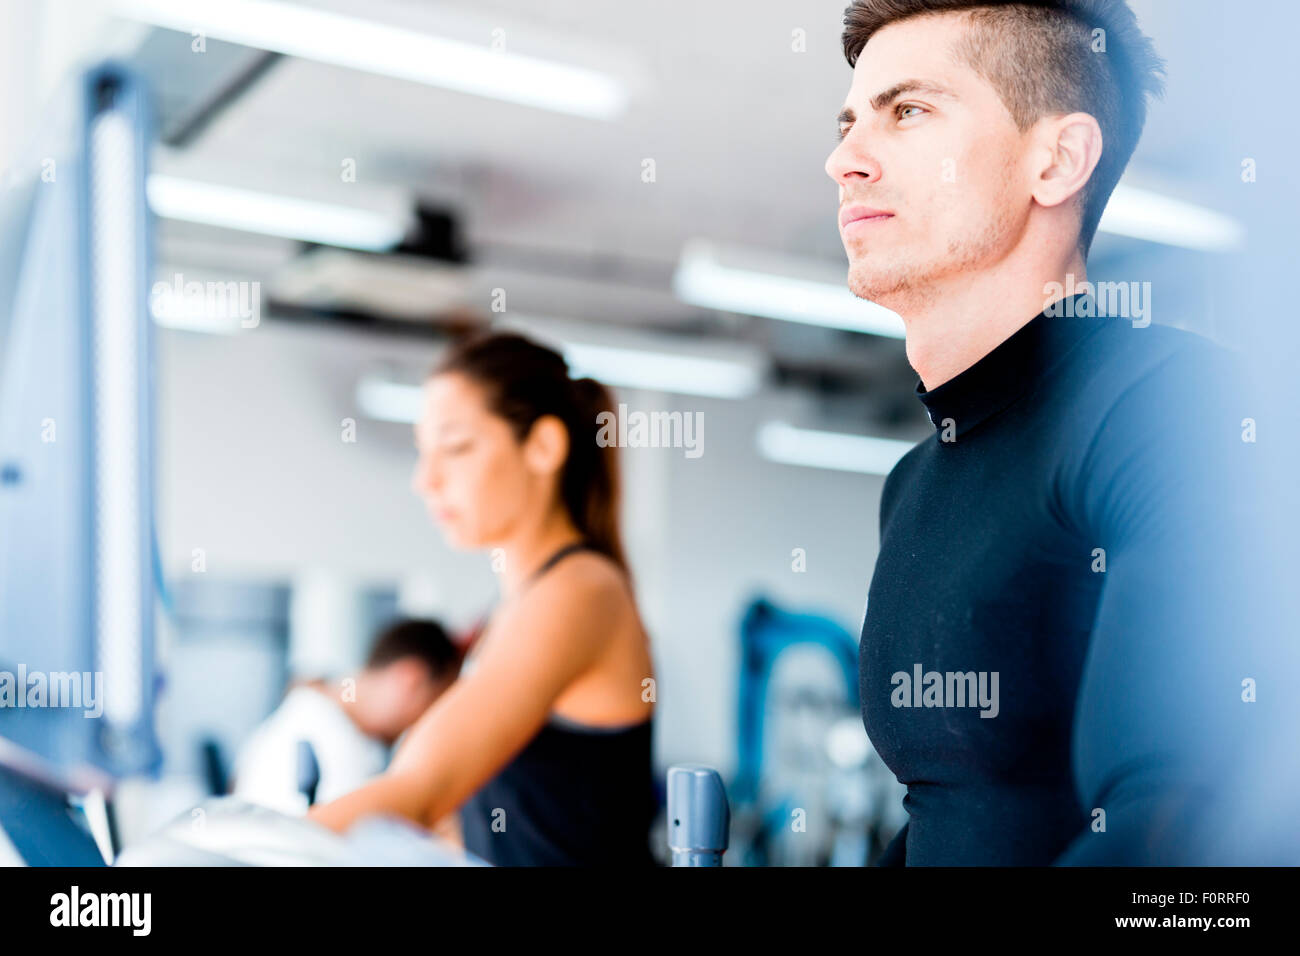 Group of healthy young people using treadmill and elliptical trainer in a gym Stock Photo